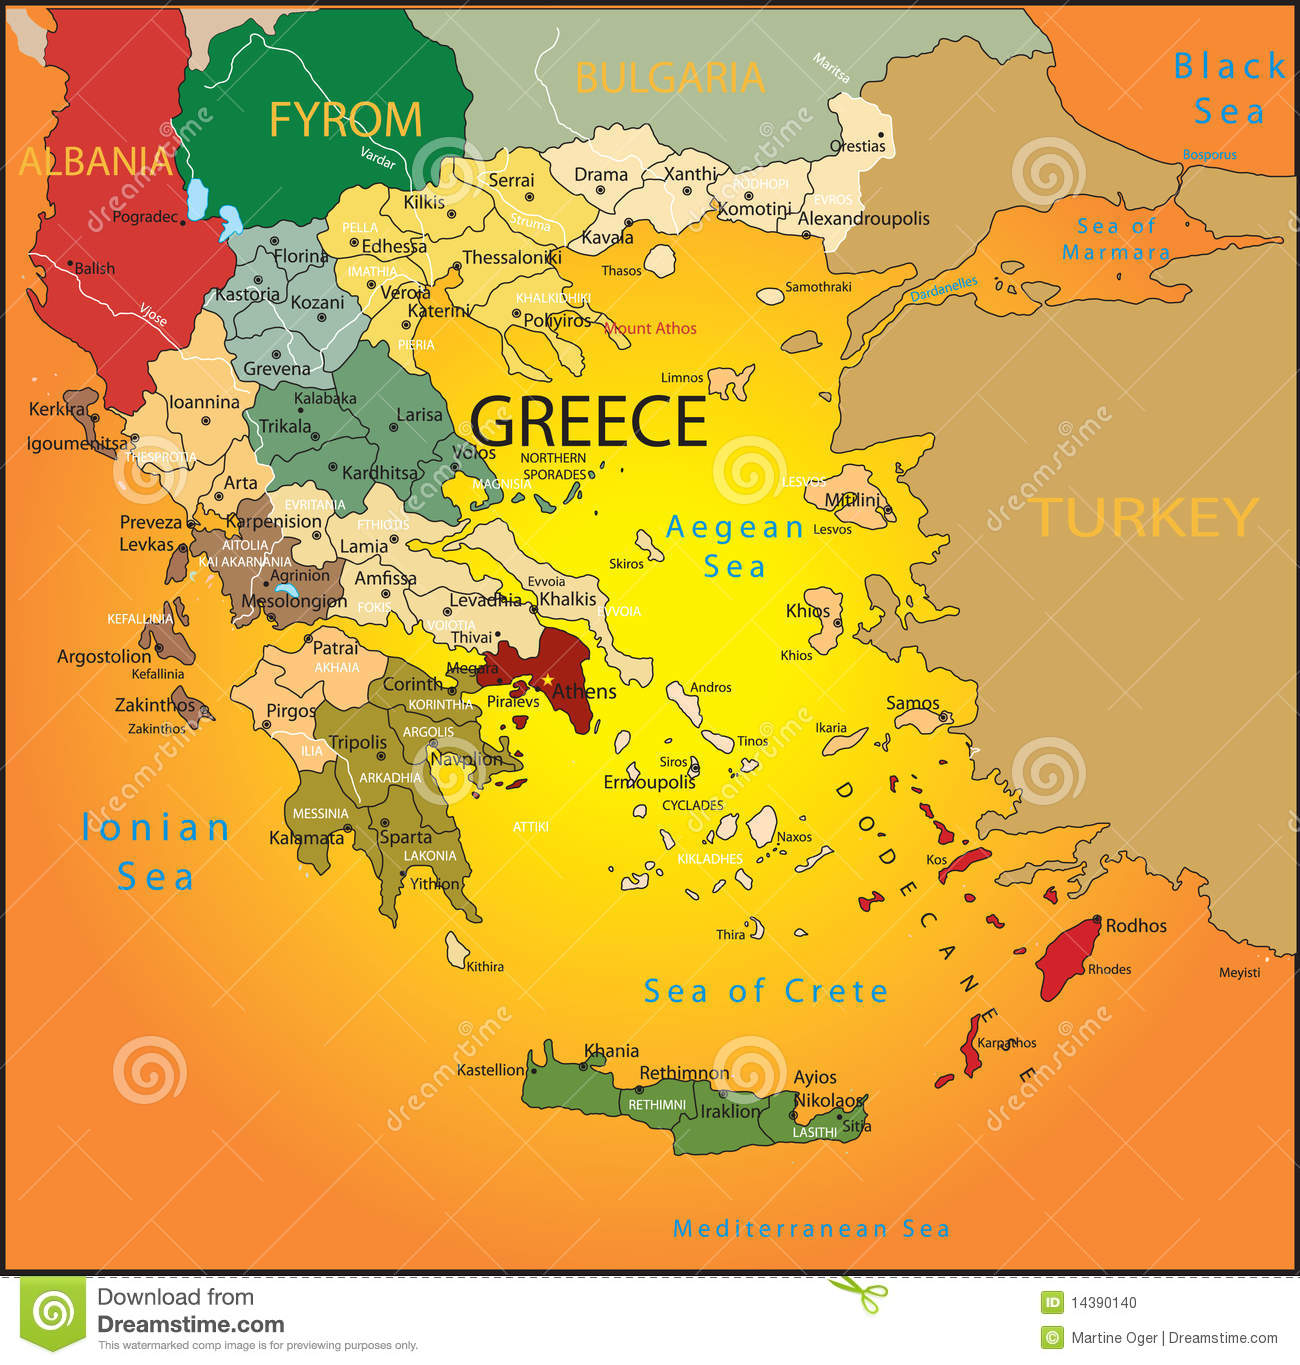 united states political map with Stock Photo Greece Map Image14390140 on Mi Map 8 additionally Balkanization The Wave Of The Future moreover Afghanistan also Kenya Physical Map in addition Detroit Map.